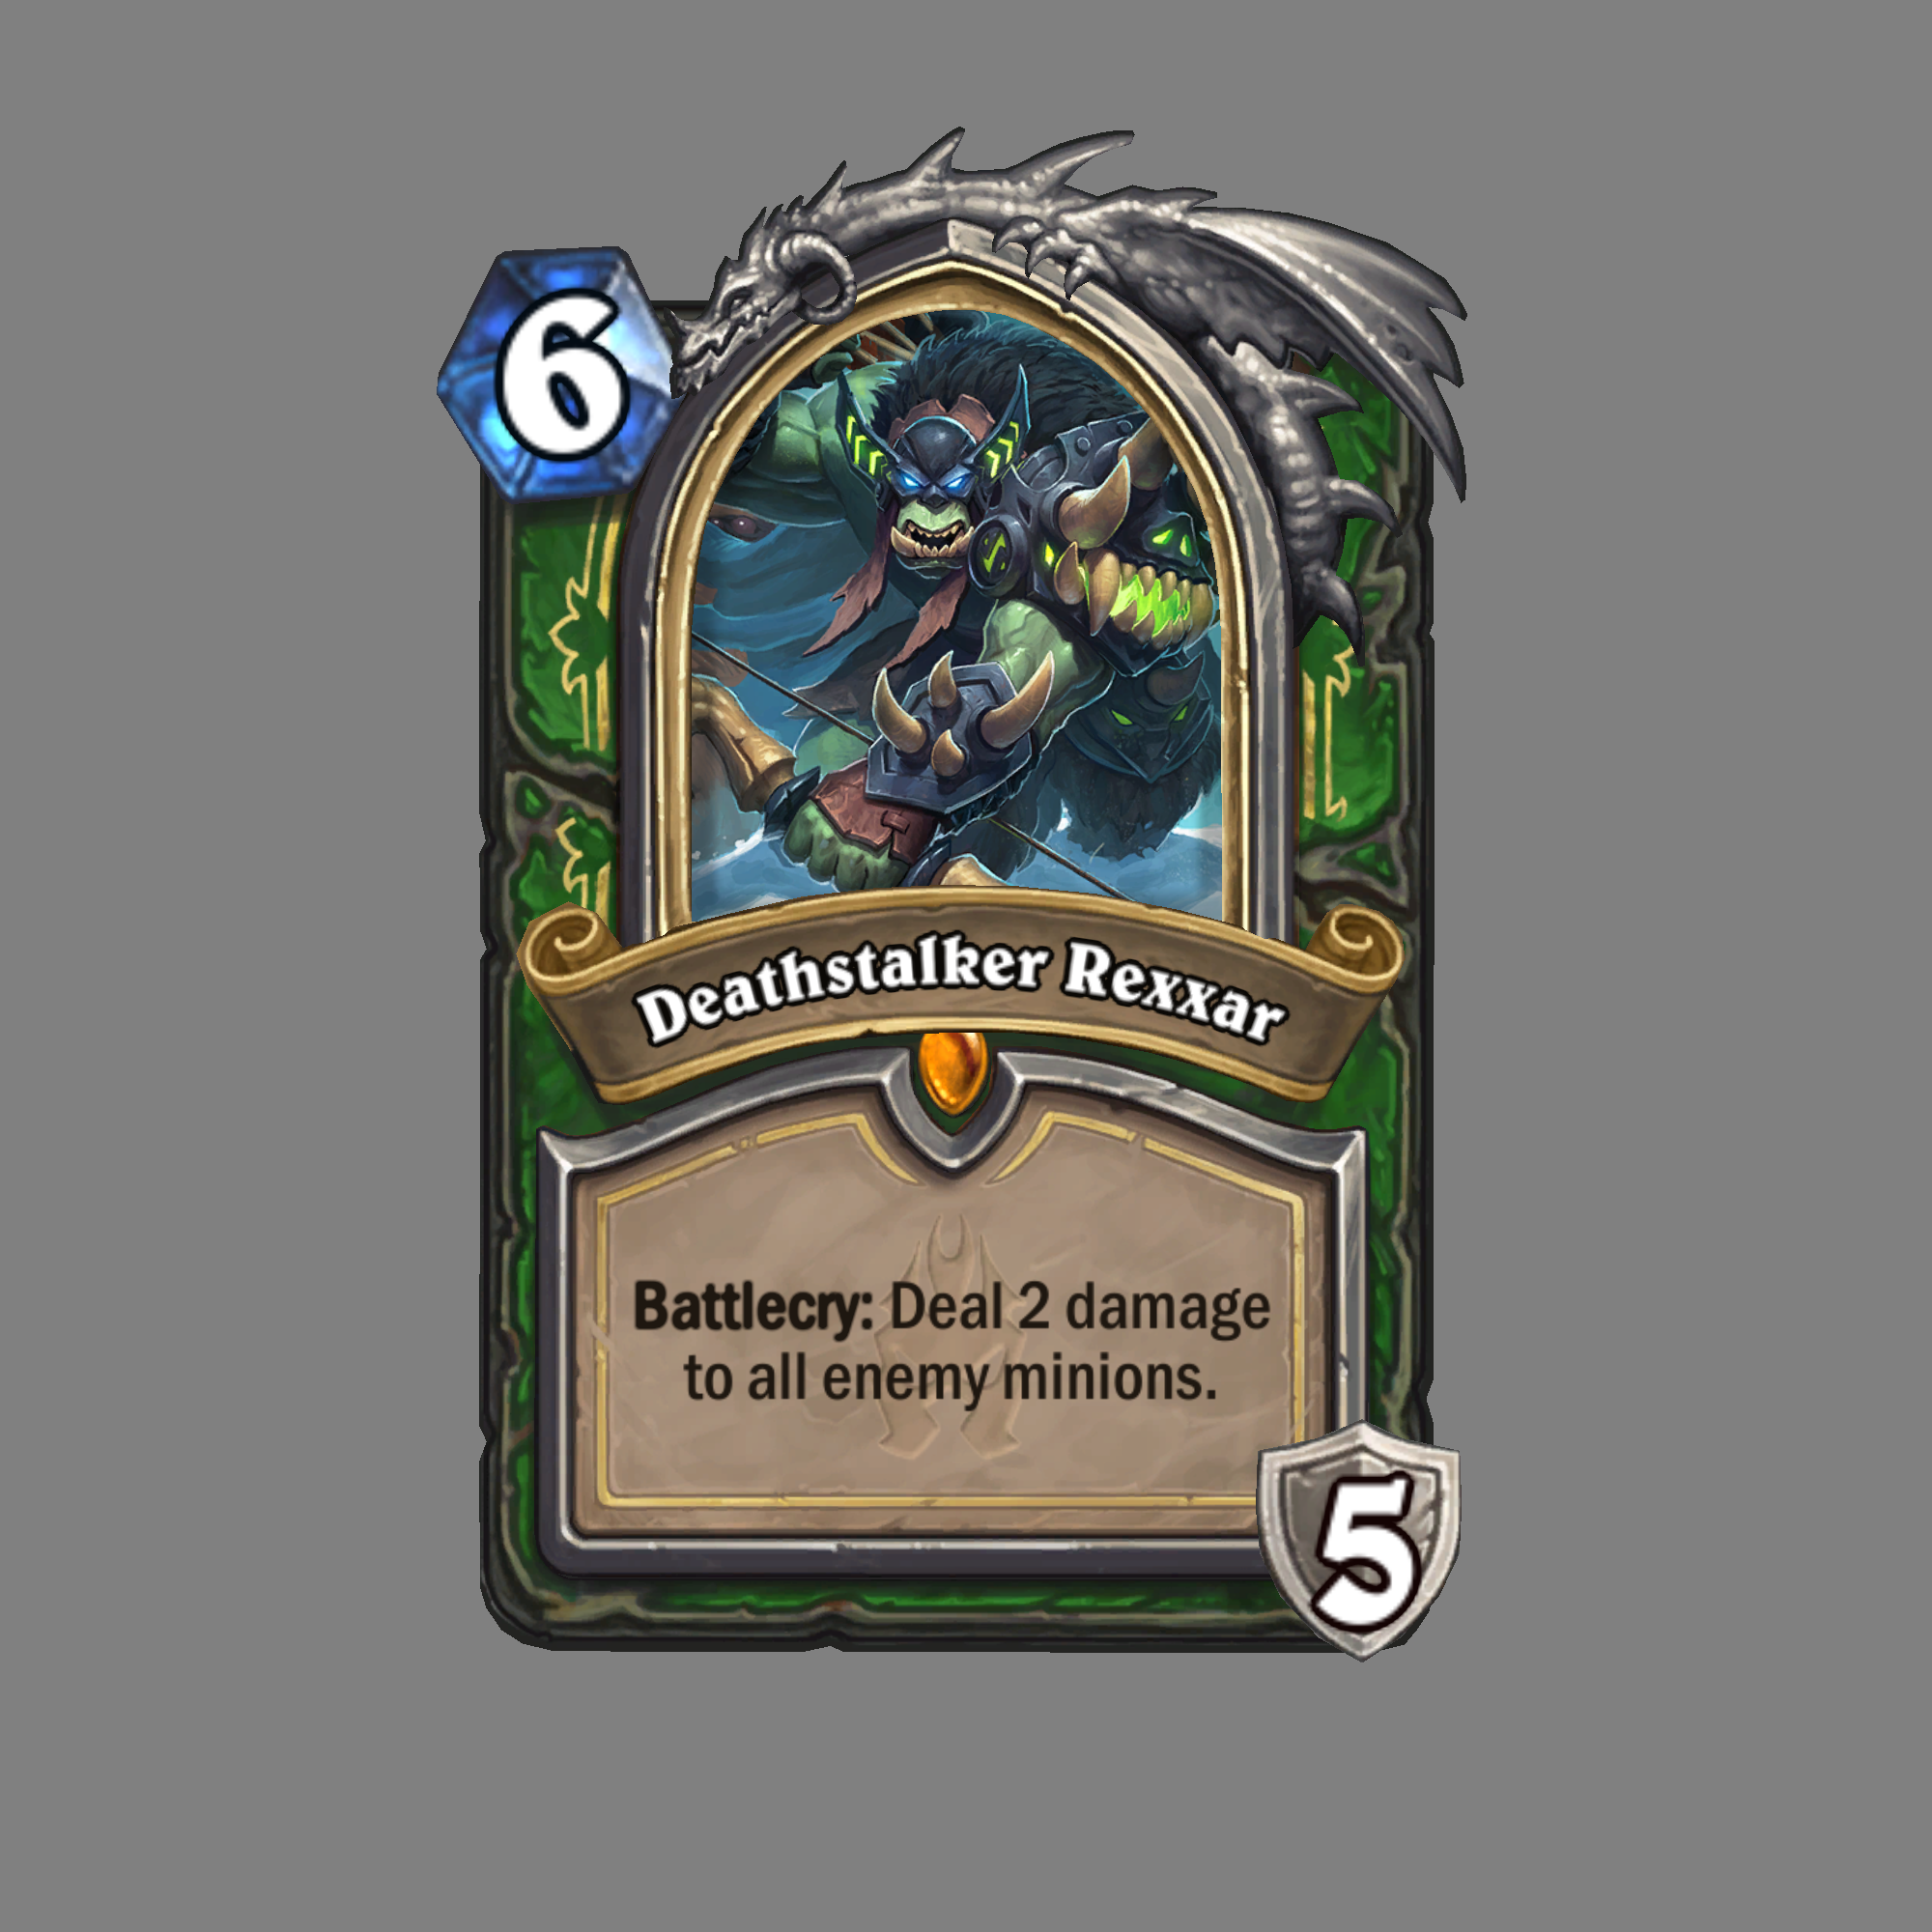 Hearthstone: Knights of the Frozen Throne Card Art